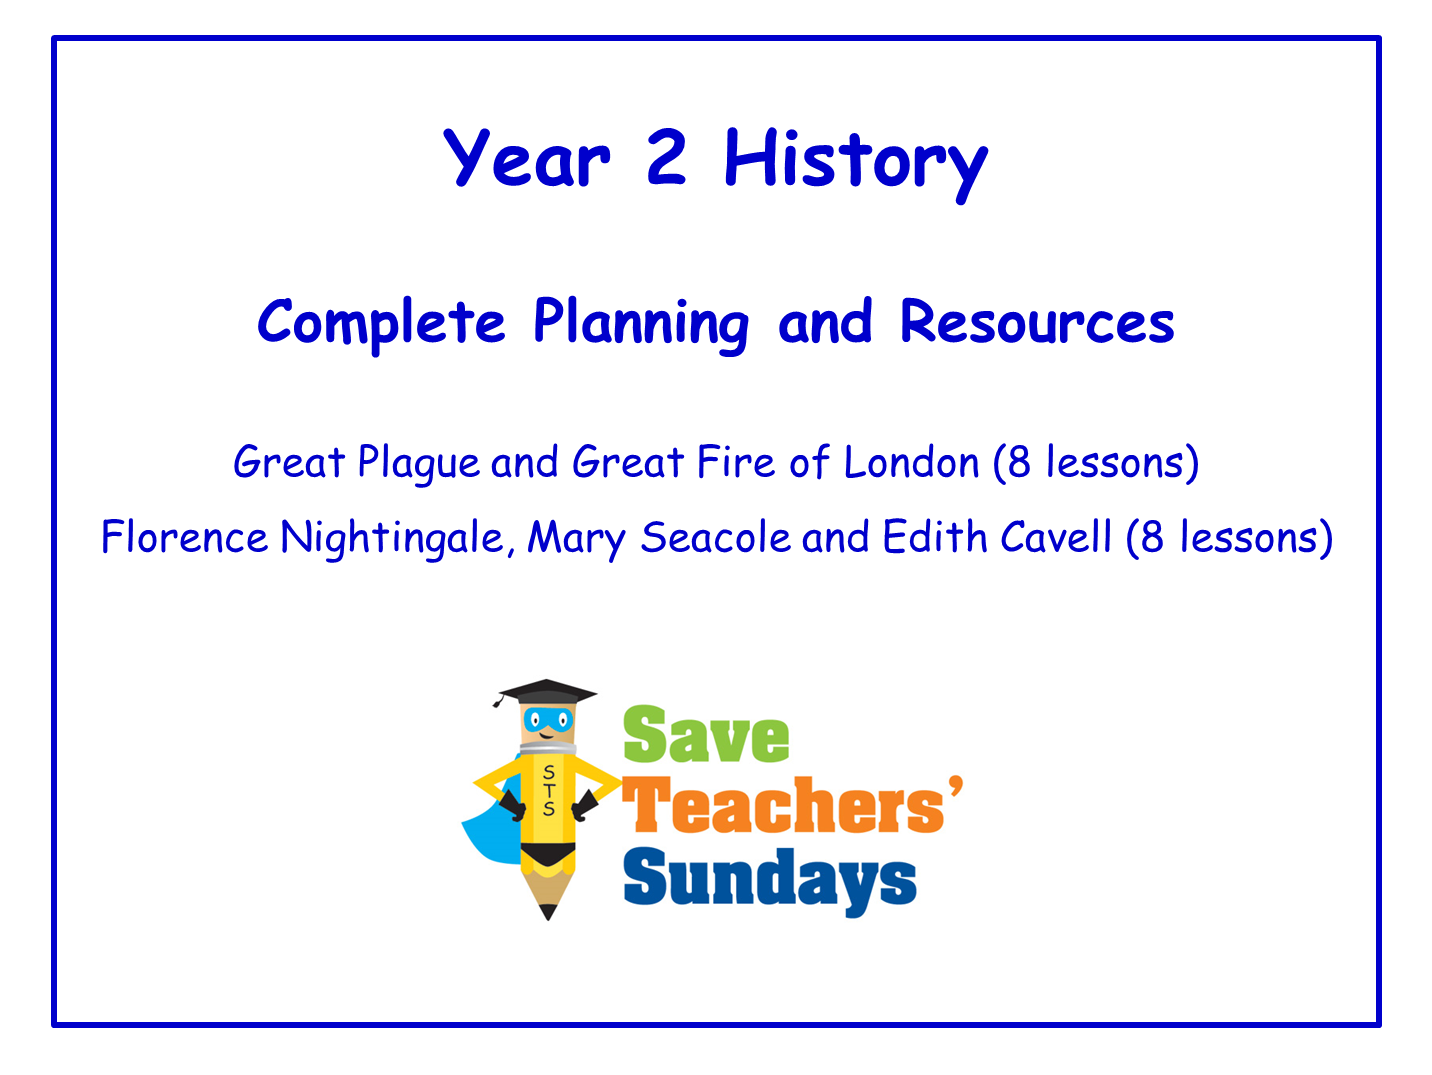 Year 2 History Planning and Resources